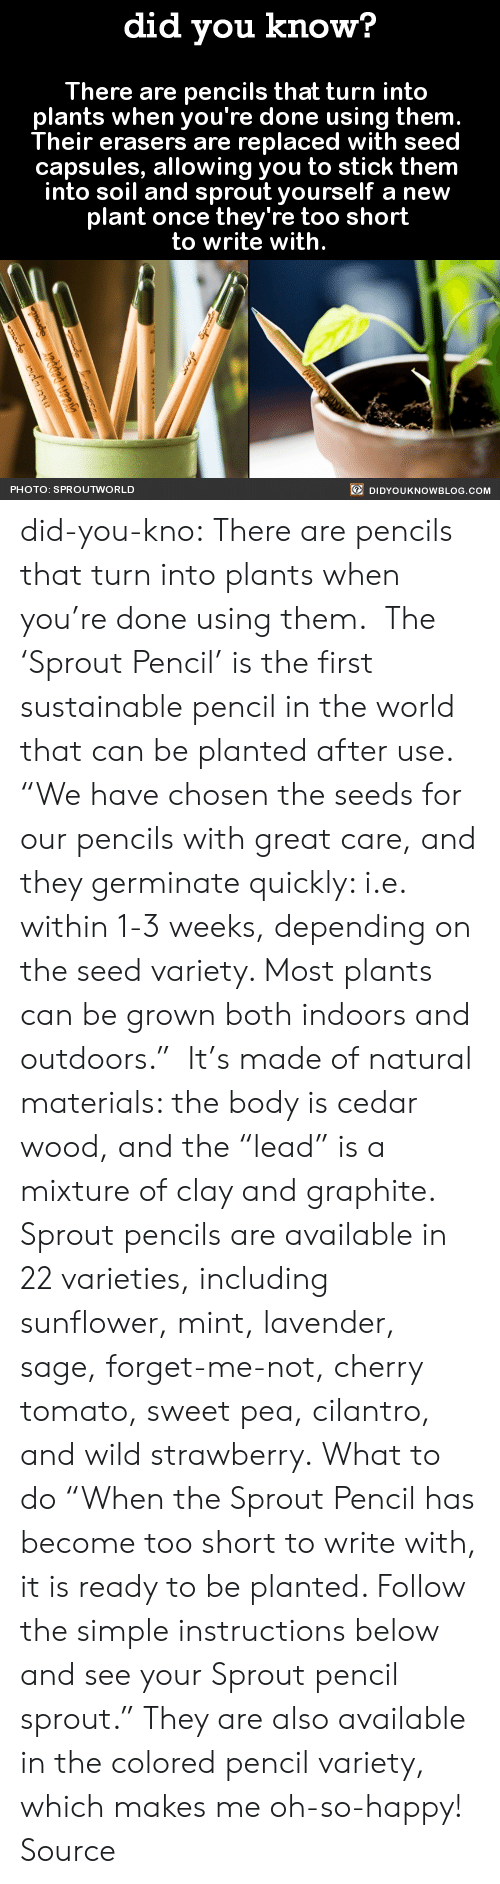 "Indoors: did you know?  There are pencils that turn into  plants when you're done using them  Their erasers are replaced with seed  capsules, allowing you to stick them  into soil and sprout yourself a new  plant once they're too short  to write with.  PHOTO: SPROUTWORLD  DIDYOUKNOWBLOG.COM did-you-kno:  There are pencils that turn into  plants when you're done using them.    The 'Sprout Pencil' is the first sustainable pencil in the world that can be planted after use.   ""We have chosen the seeds for our pencils with great care, and they germinate quickly: i.e. within 1-3 weeks, depending on the seed variety. Most plants can be grown both indoors and outdoors.""  It's made of natural materials: the body is cedar wood, and the ""lead"" is a mixture of clay and graphite. Sprout pencils are available in 22 varieties, including sunflower, mint, lavender, sage, forget-me-not, cherry tomato, sweet pea, cilantro, and wild strawberry. What to do ""When the Sprout Pencil has become too short to write with, it is ready to be planted. Follow the simple instructions below and see your Sprout pencil sprout."" They are also available in the colored pencil variety, which makes me oh-so-happy!  Source"